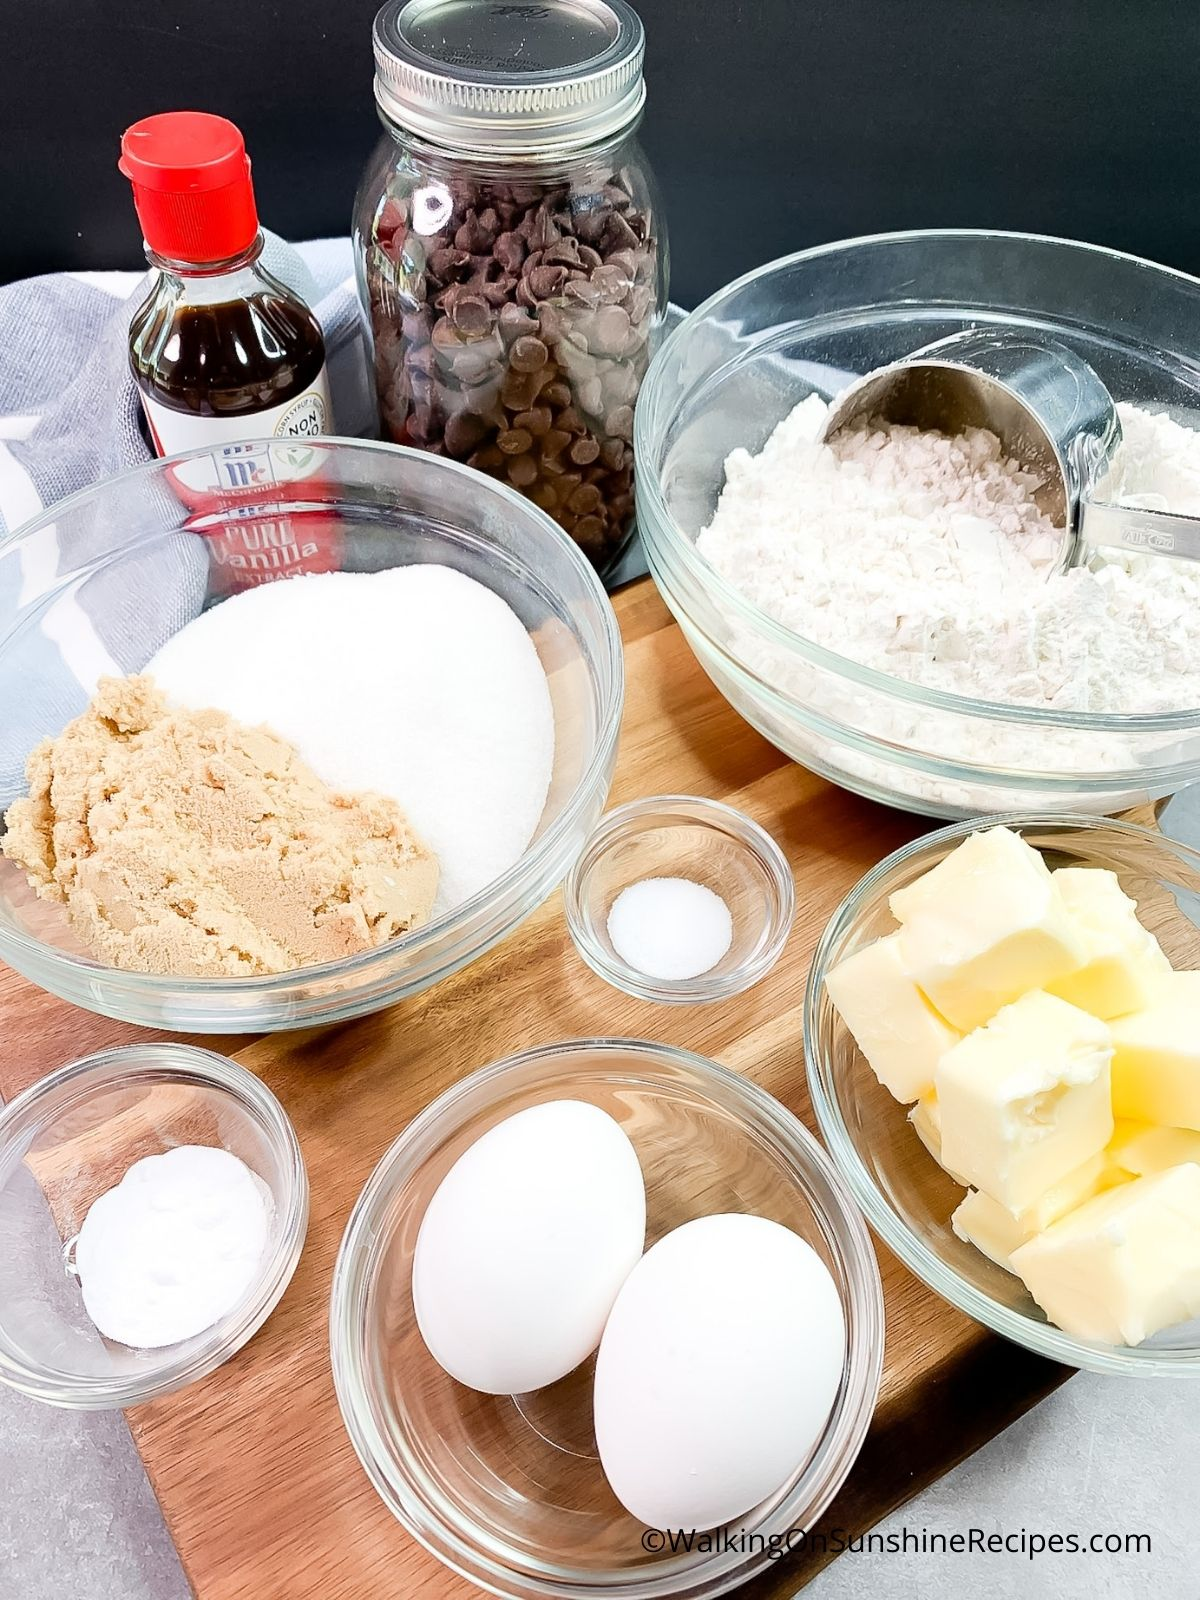 Ingredients for Giant Chocolate Chip Cookie.